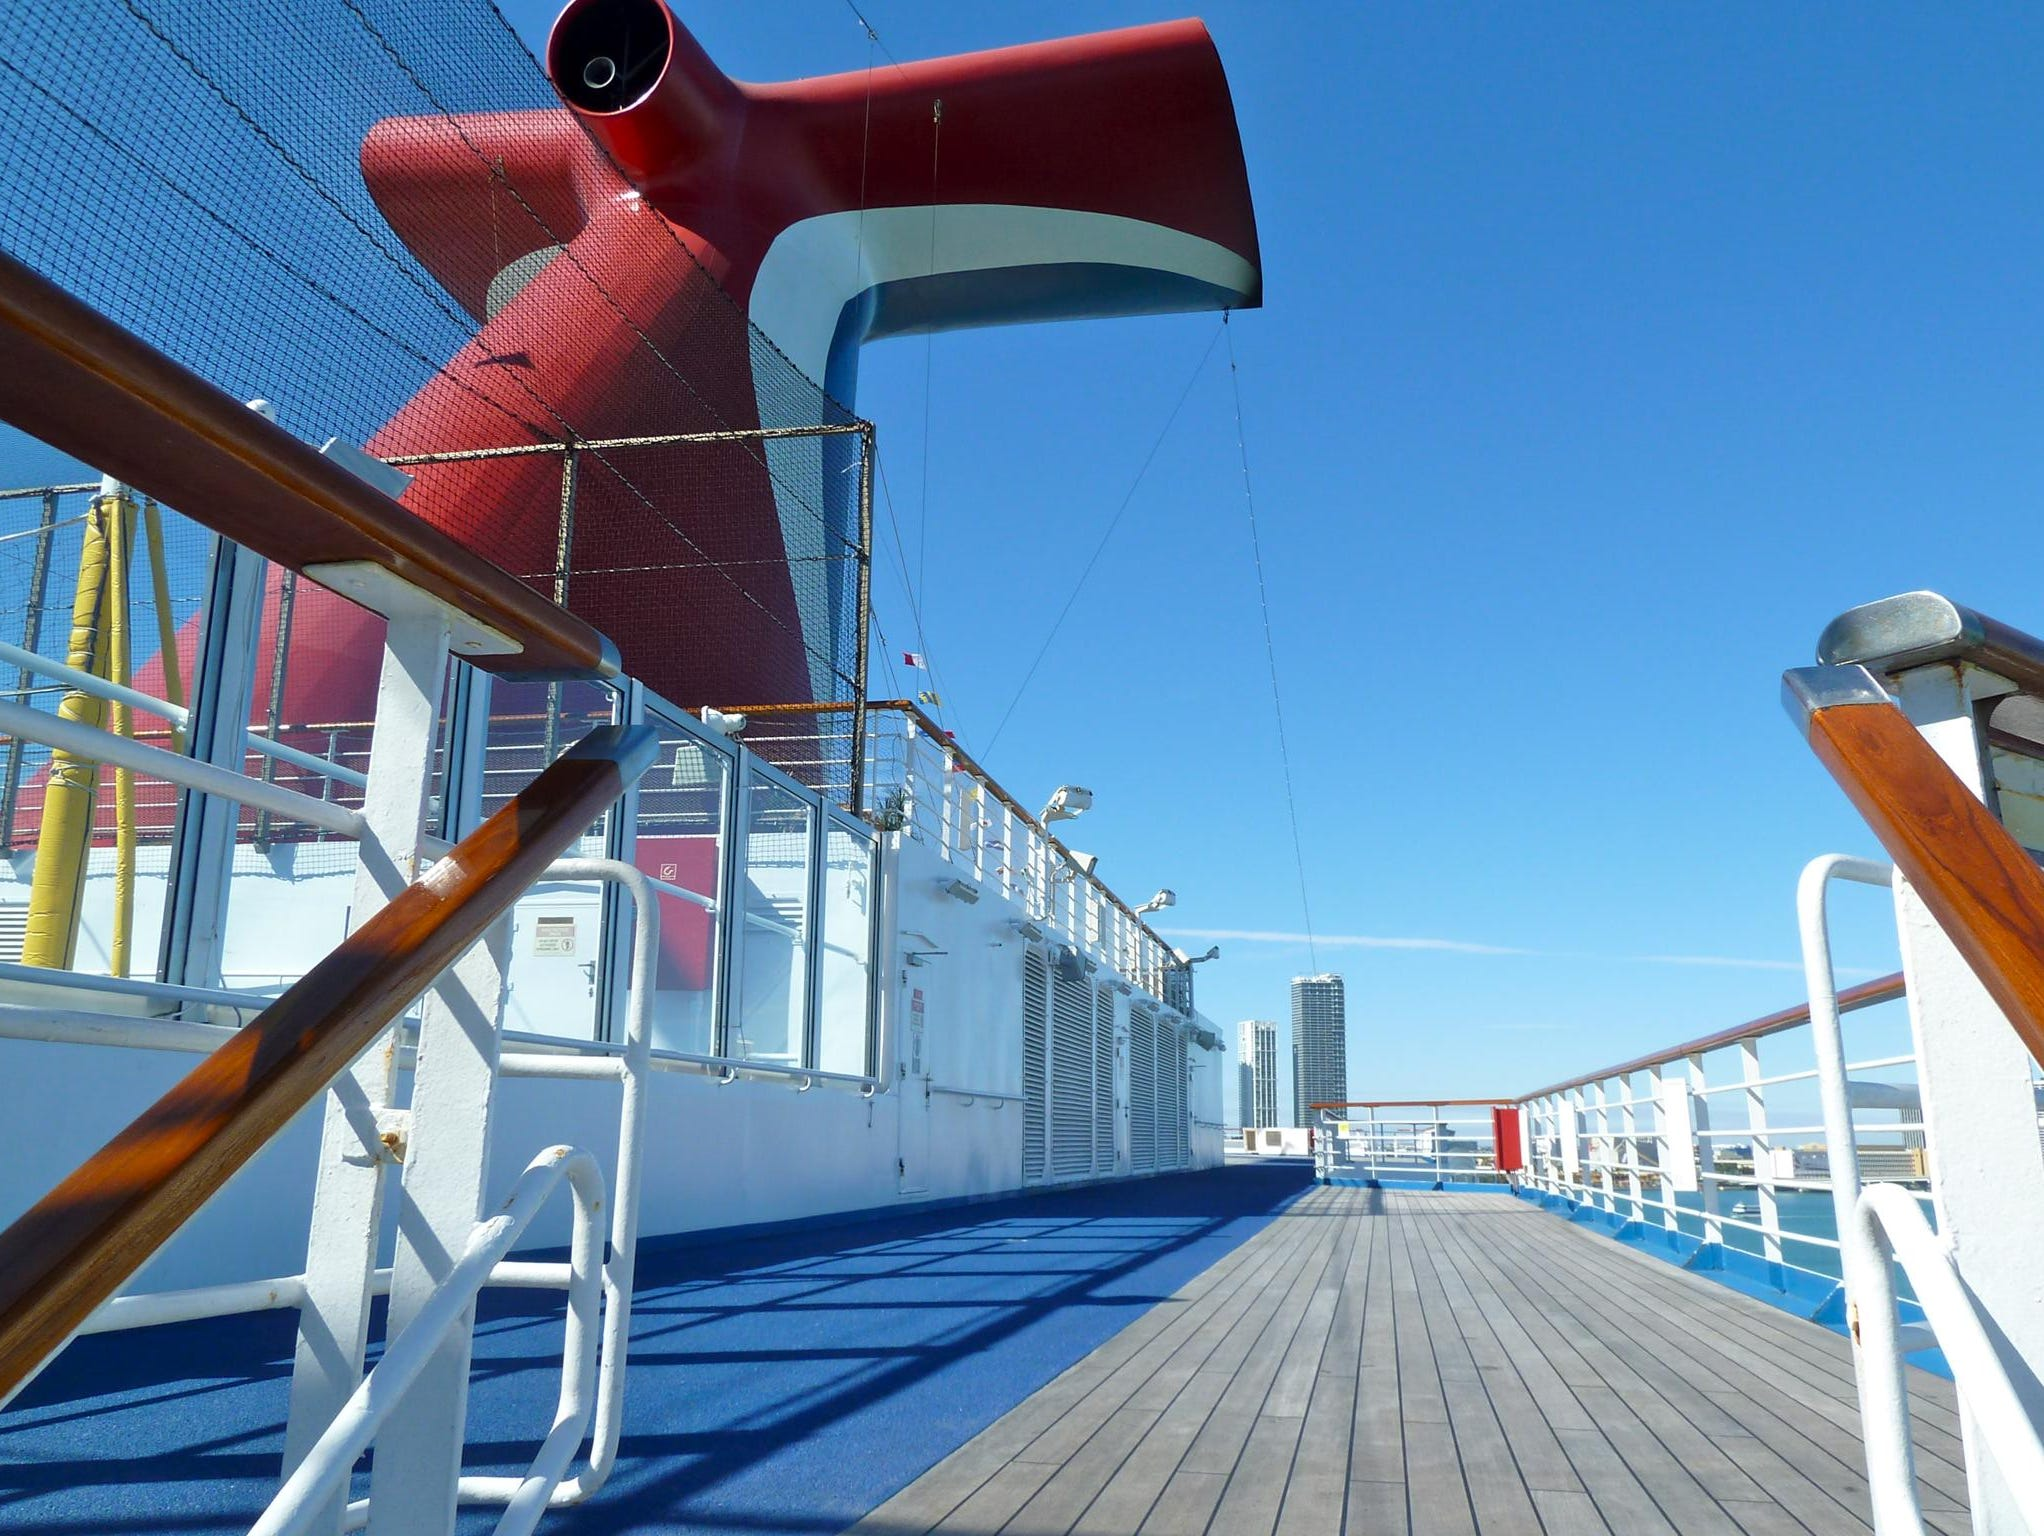 Aft Deck 11 features yet more teak decking for sunning and promenades as well as a jogging track.